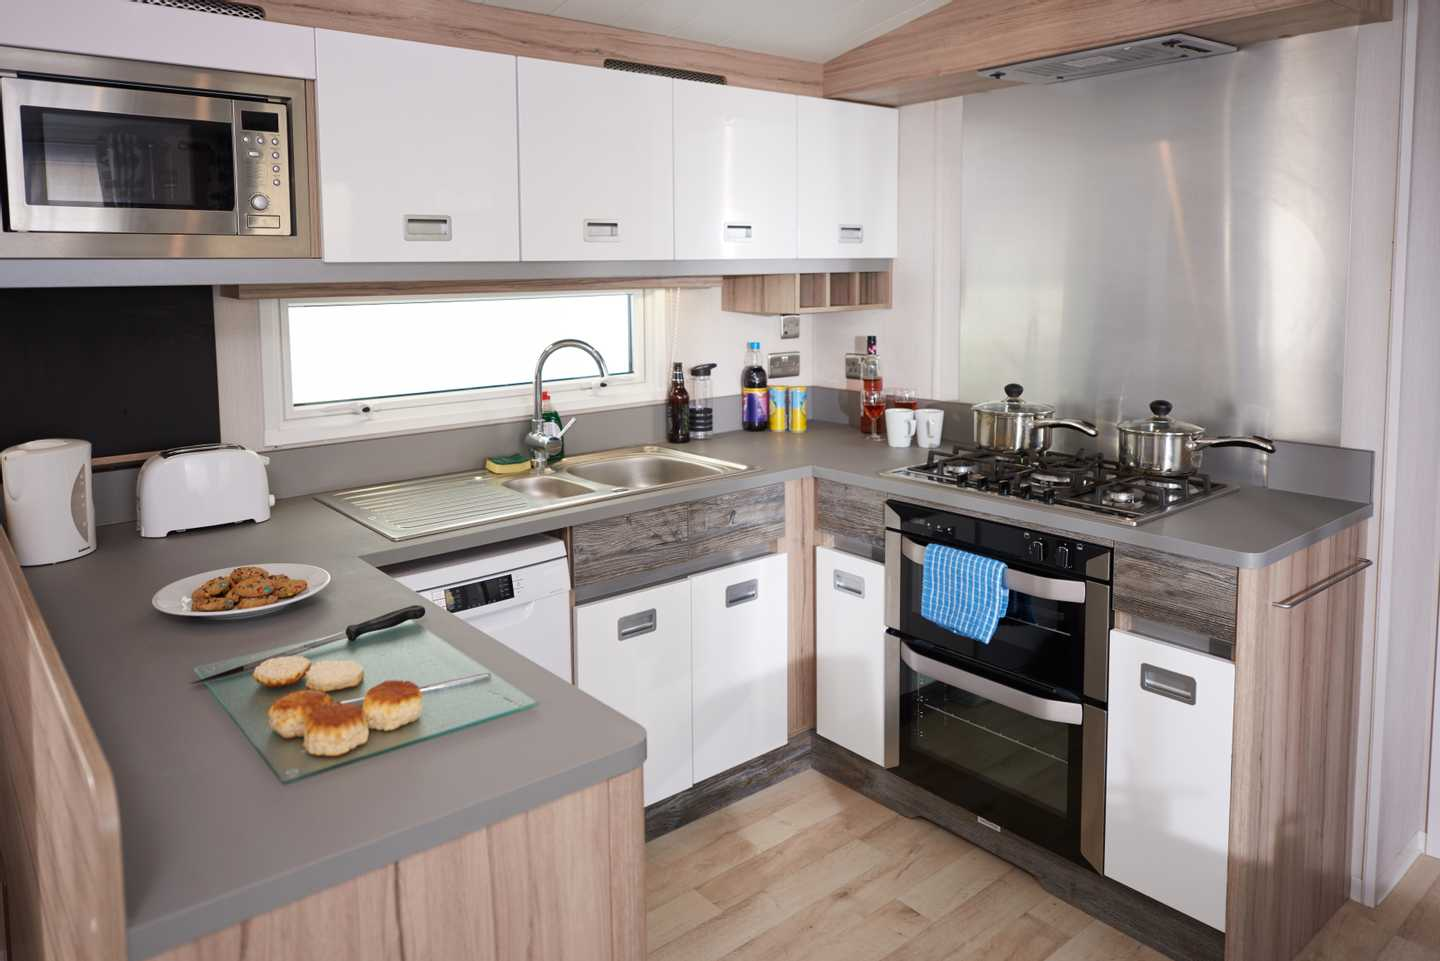 A Platinum with Decking caravan kitchen with oven, microwave and cookies on the kitchen top